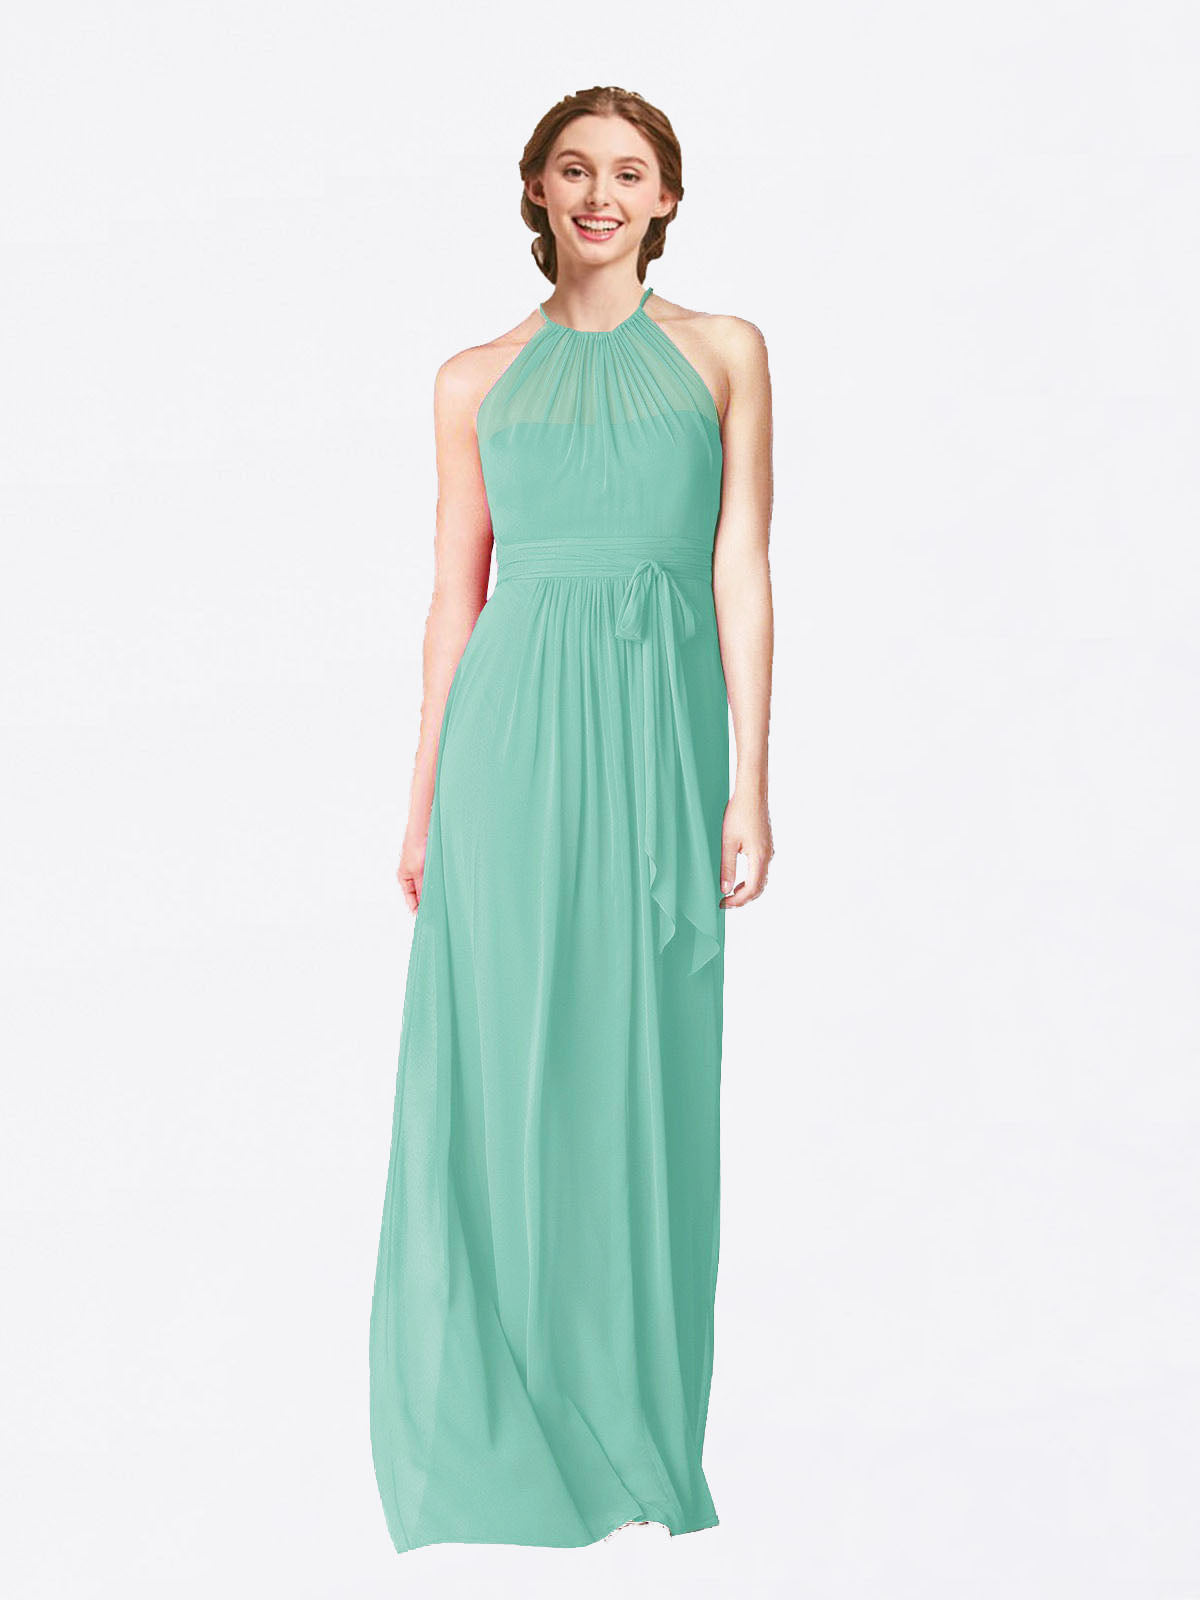 Long A-Line Halter Sleeveless Jade Chiffon Bridesmaid Dress Laura